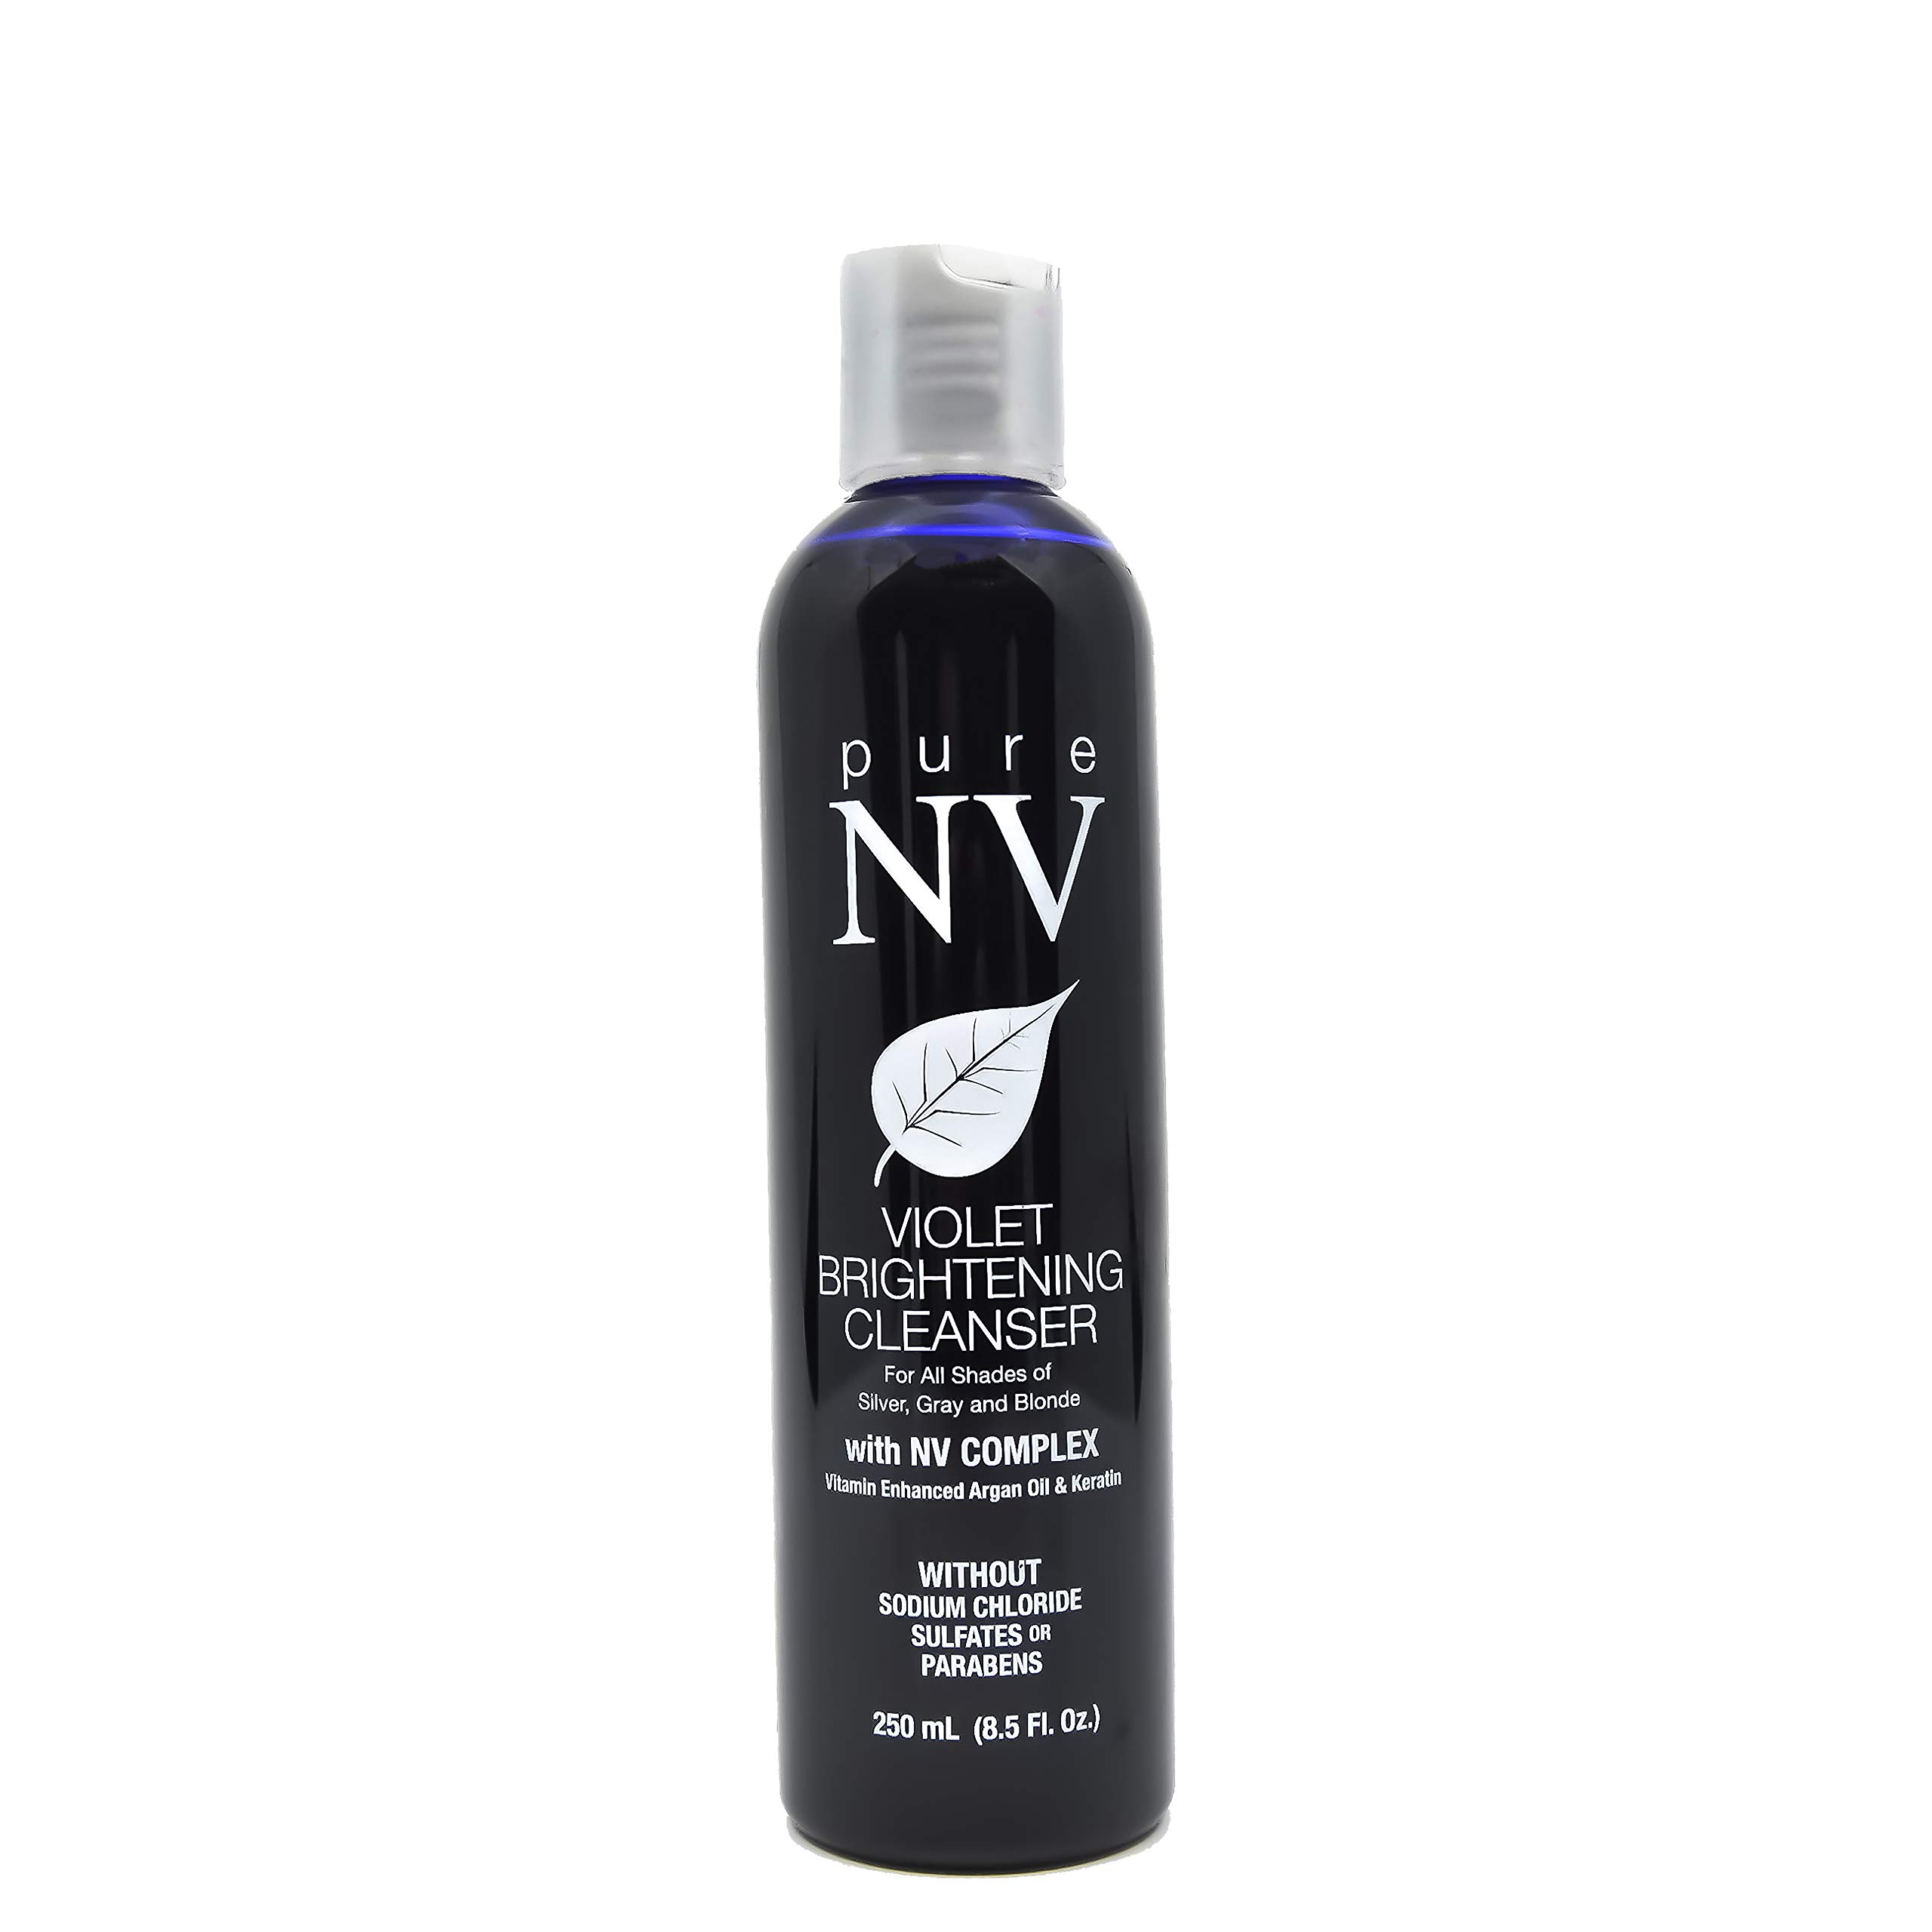 Pure NV Violet Brightening Cleanser- Brightens & Tones Blonde, Silver, & Gray Tones to Prevent Brassiness Infused with Keratin, Collagen & Argan Oil Sulfate & Sodium Chloride Free 8.5 oz